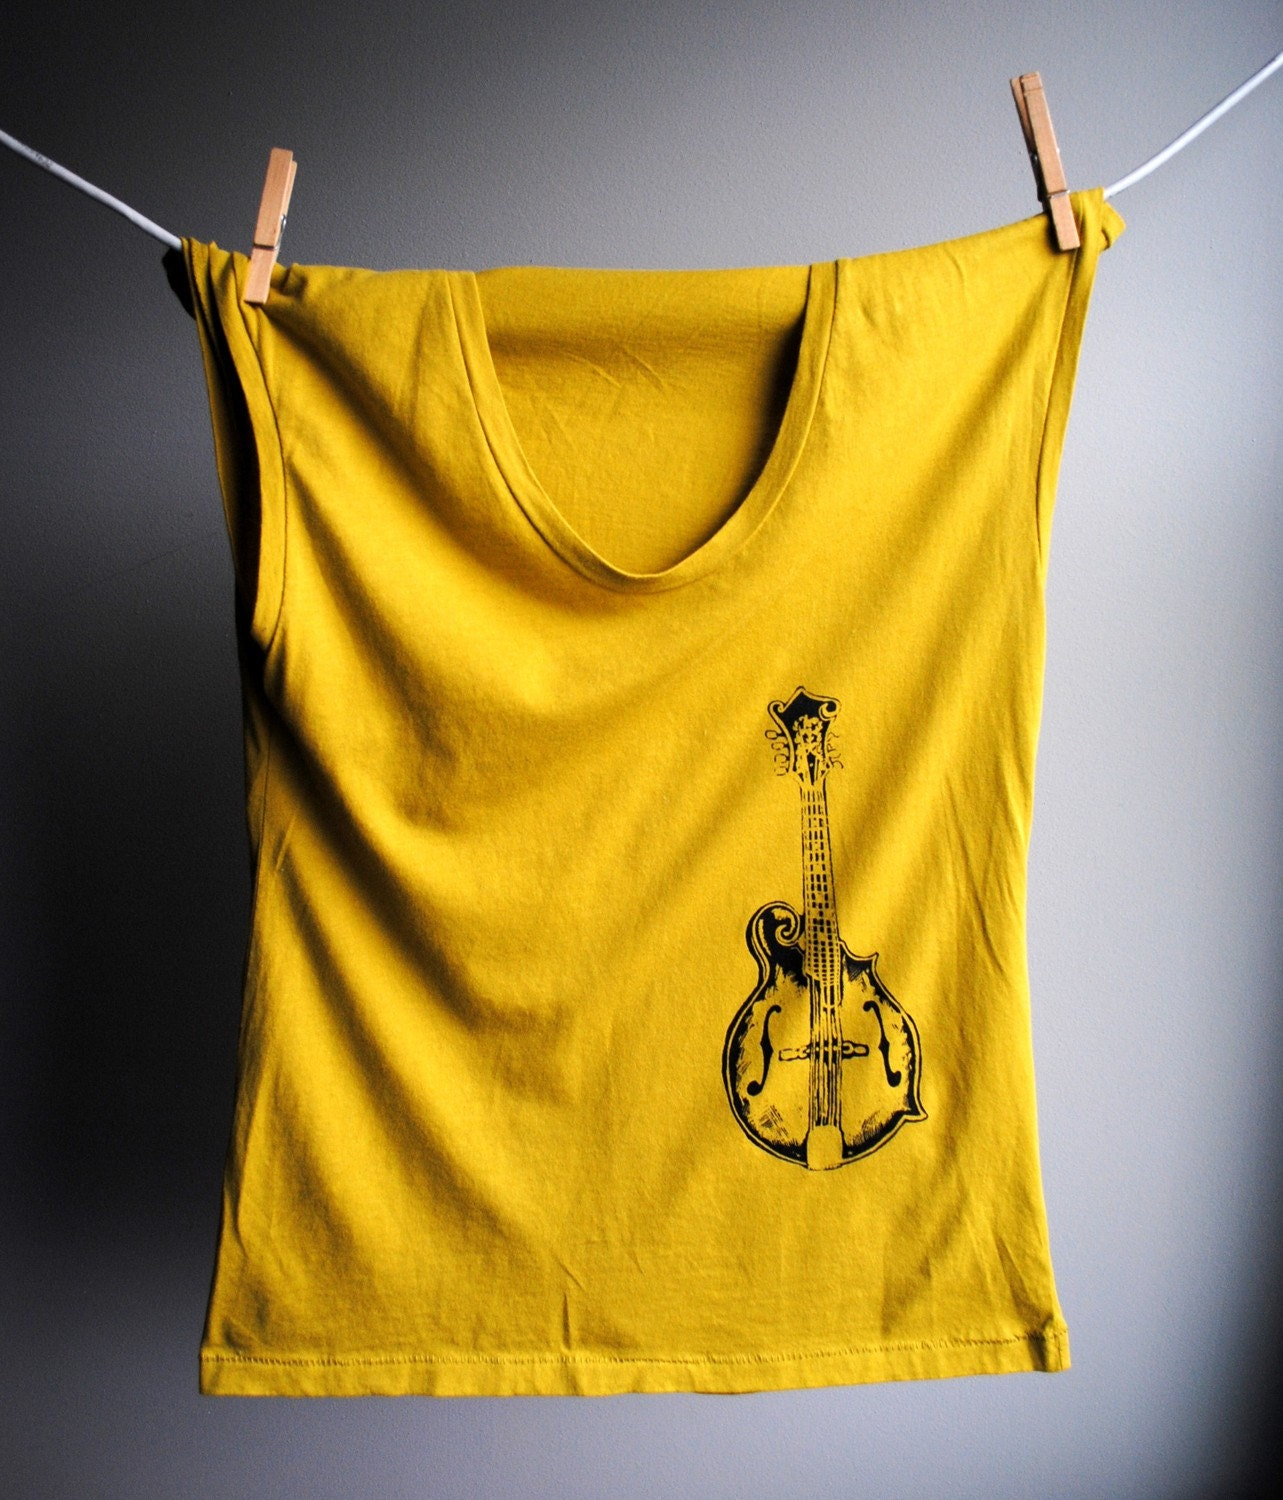 Mandolin Womens Tank - Sleeveless Dijon Yellow TShirt -  Screen printed in Black Ink - Size Medium